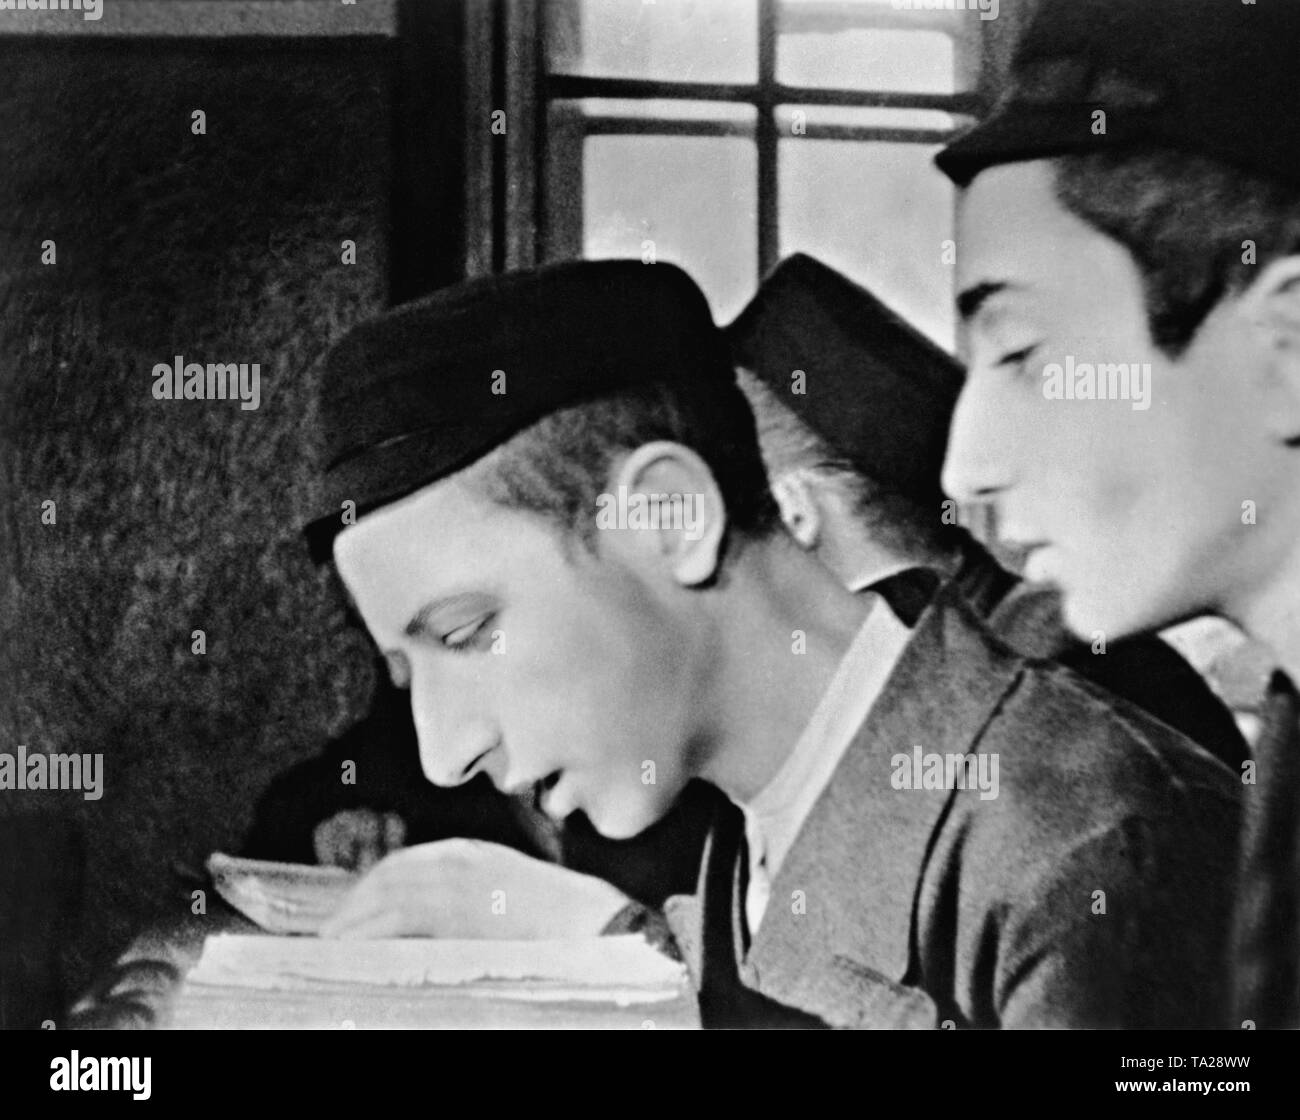 Scene from the Nazi propaganda film 'The Eternal Jew' (directed by Fritz Hippler, Germany 1940), in which, using the example of Polish Jews, the entire Judaism is defamed. - Stock Image